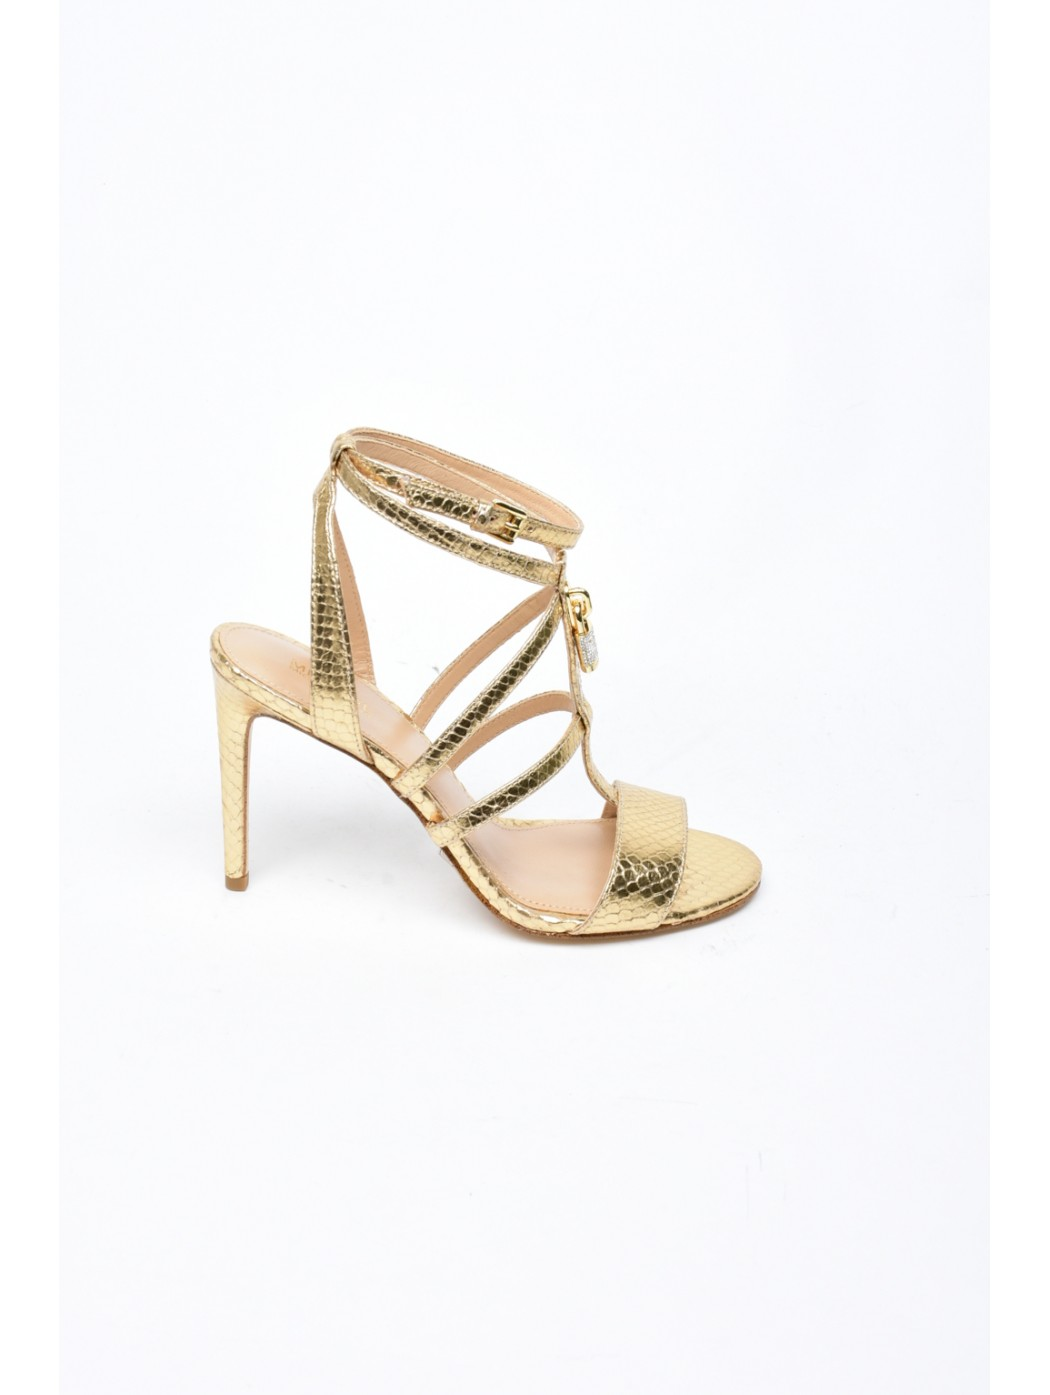 MICHAEL KORS 40R7AT HA1M SCARPE D